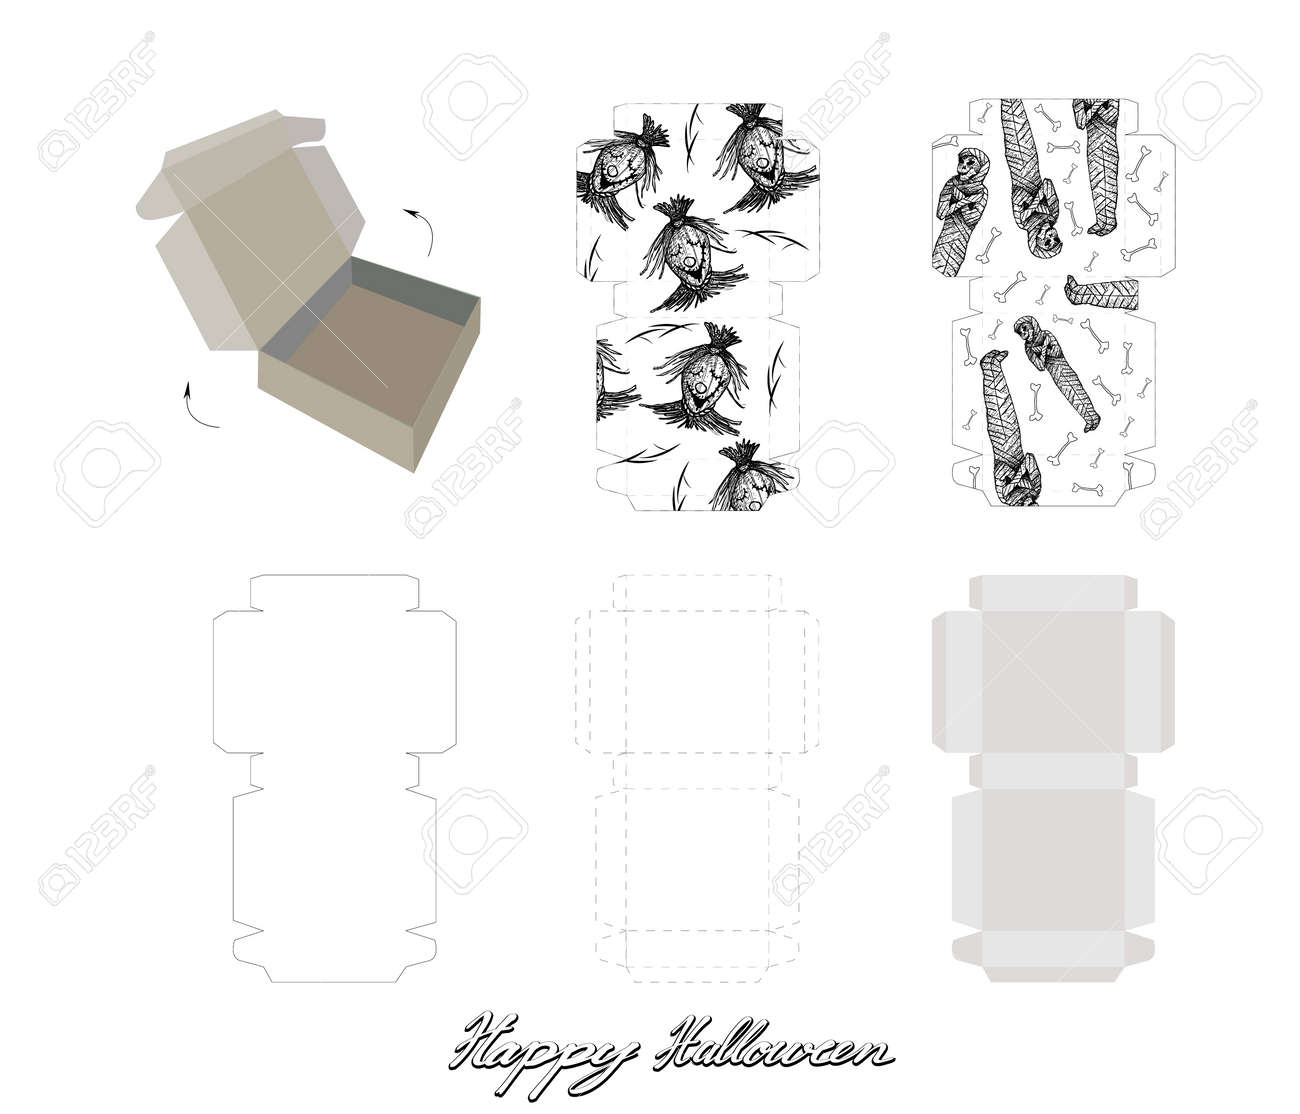 Die Cut Template Pattern Of Takeaway Carton Box Mock Up For Package Design With Evil